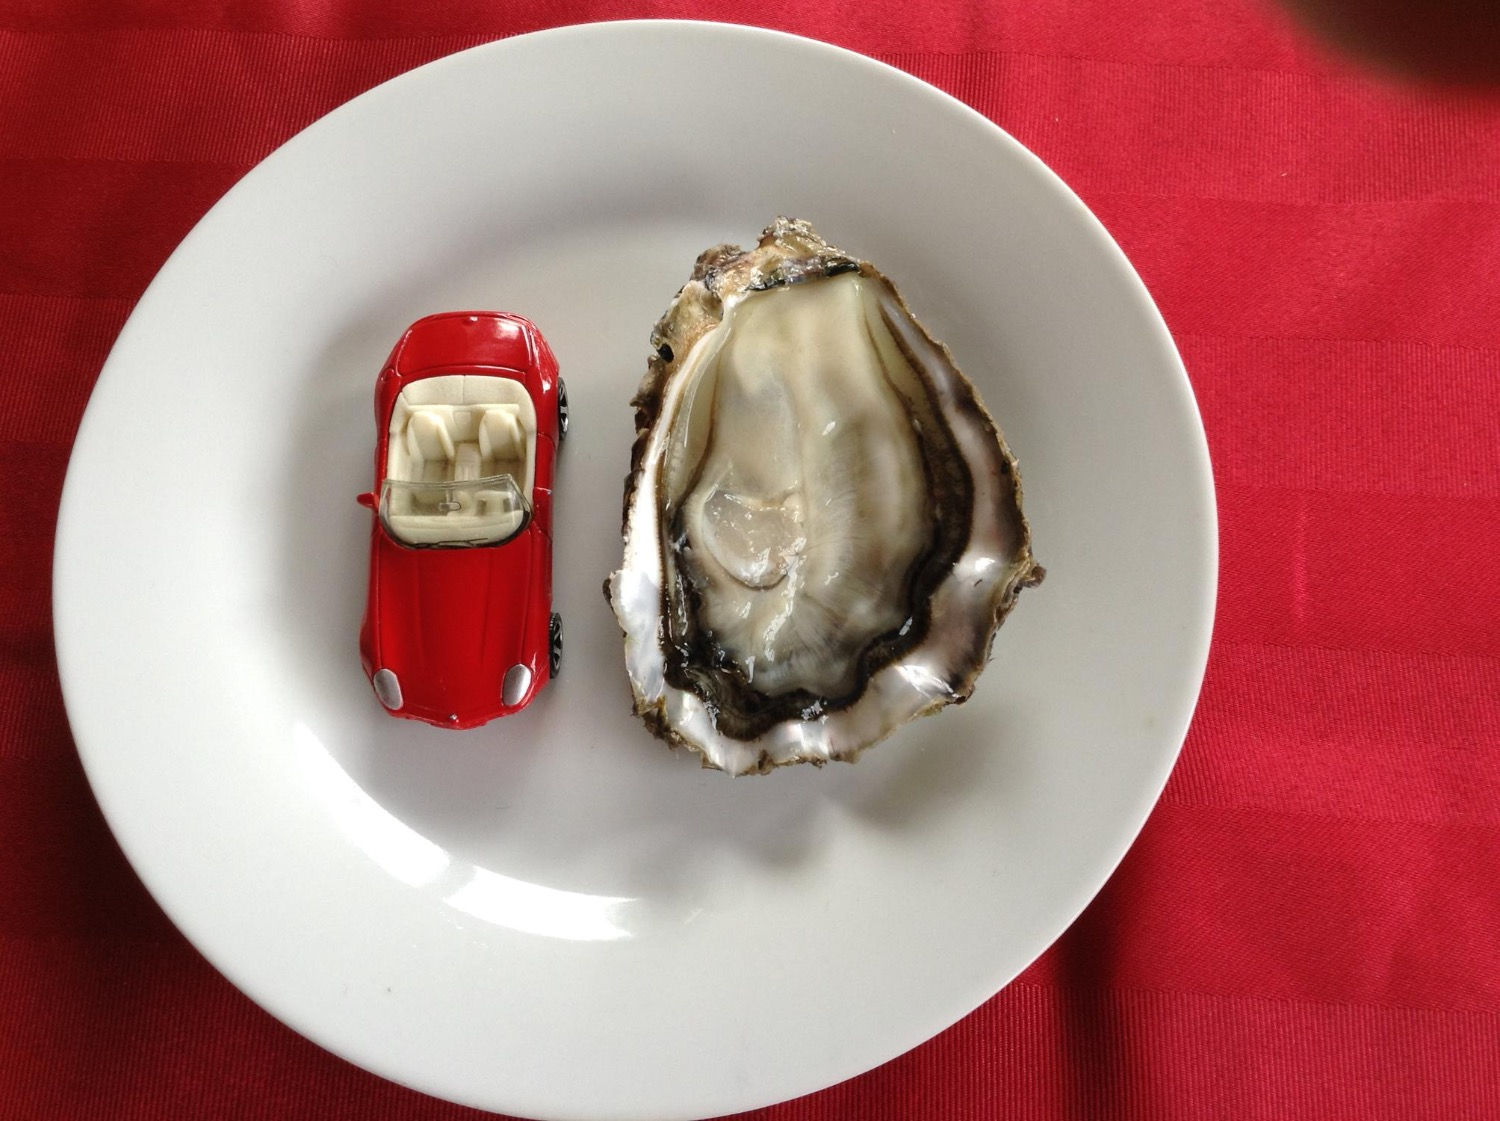 PREMIUM PACIFIC OYSTERS